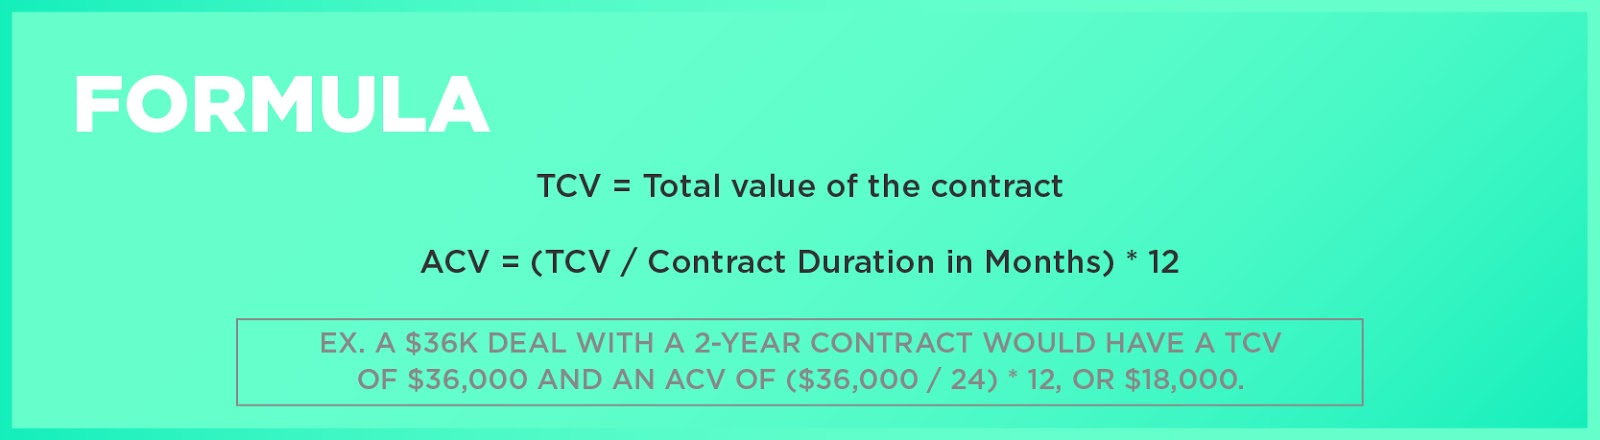 Formula: TCV = Total value of the contractACV = (TCV / Contract Duration in Months) * 12Ex. A $36k deal with a 2-year contract would have a TCV of $36,000 and an ACV of ($36,000 / 24) * 12, or $18,000.